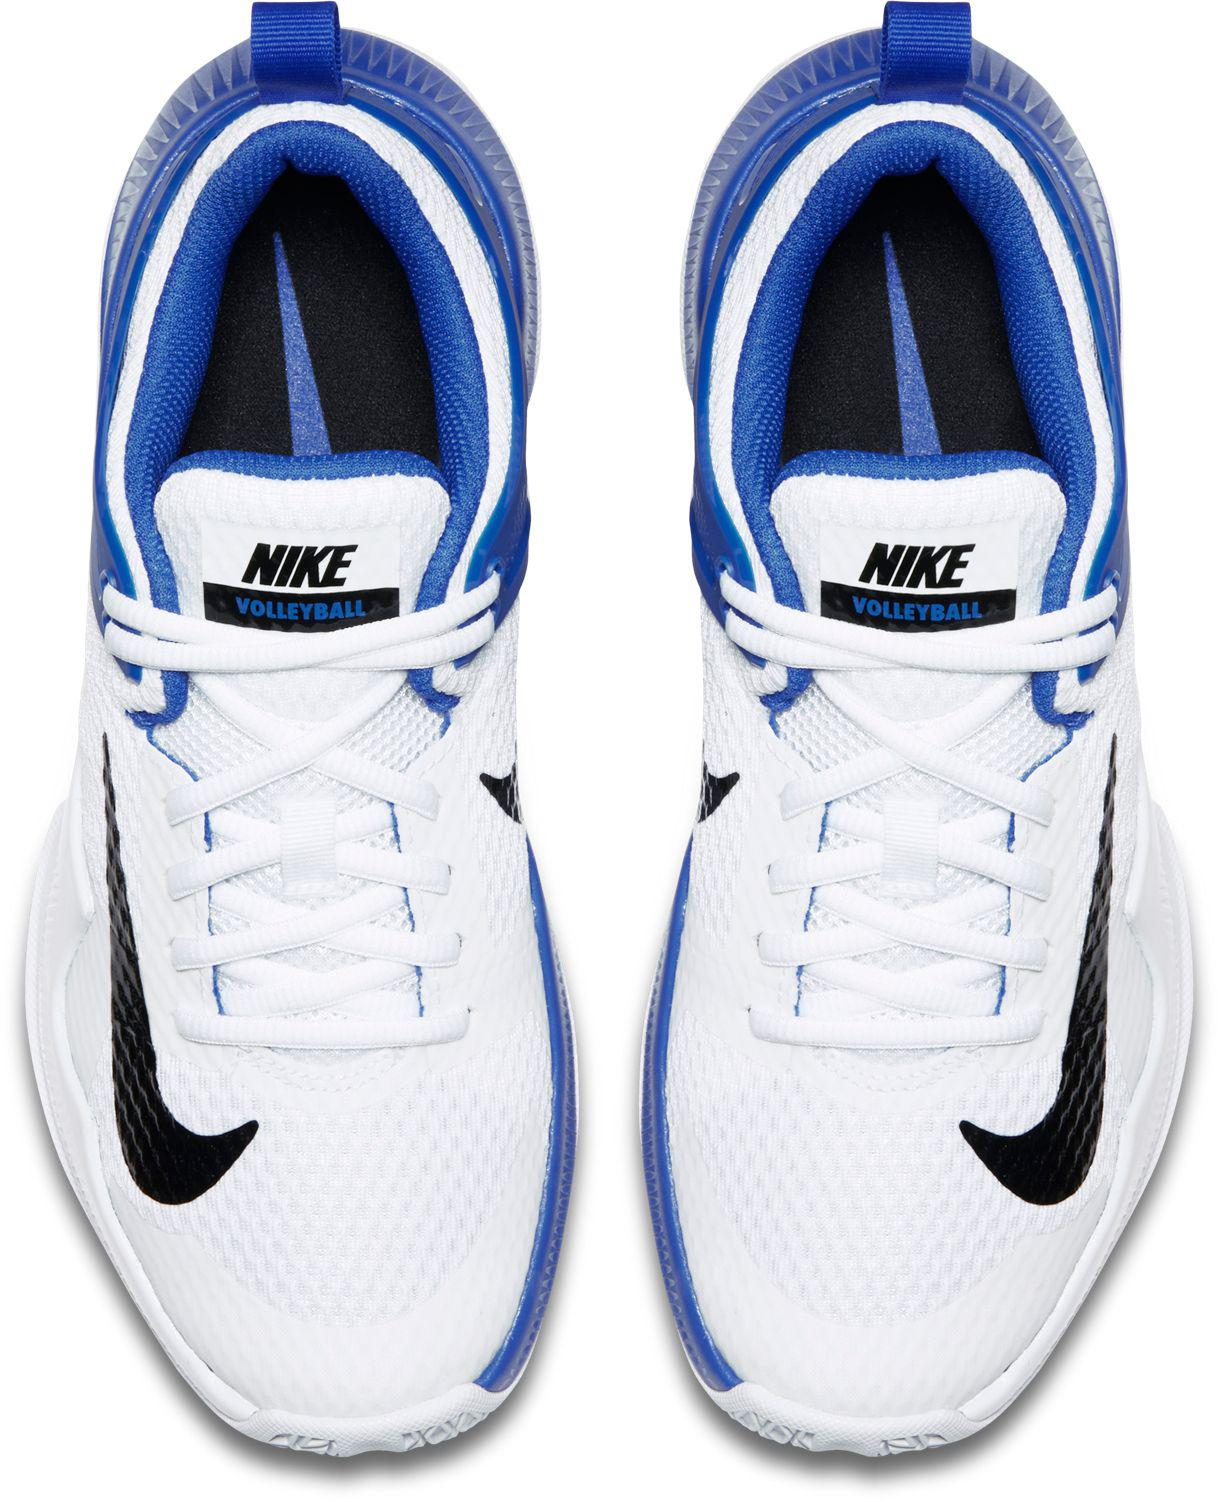 e68a25df6070 Lyst - Nike Air Zoom Hyperace Volleyball Shoes in Blue